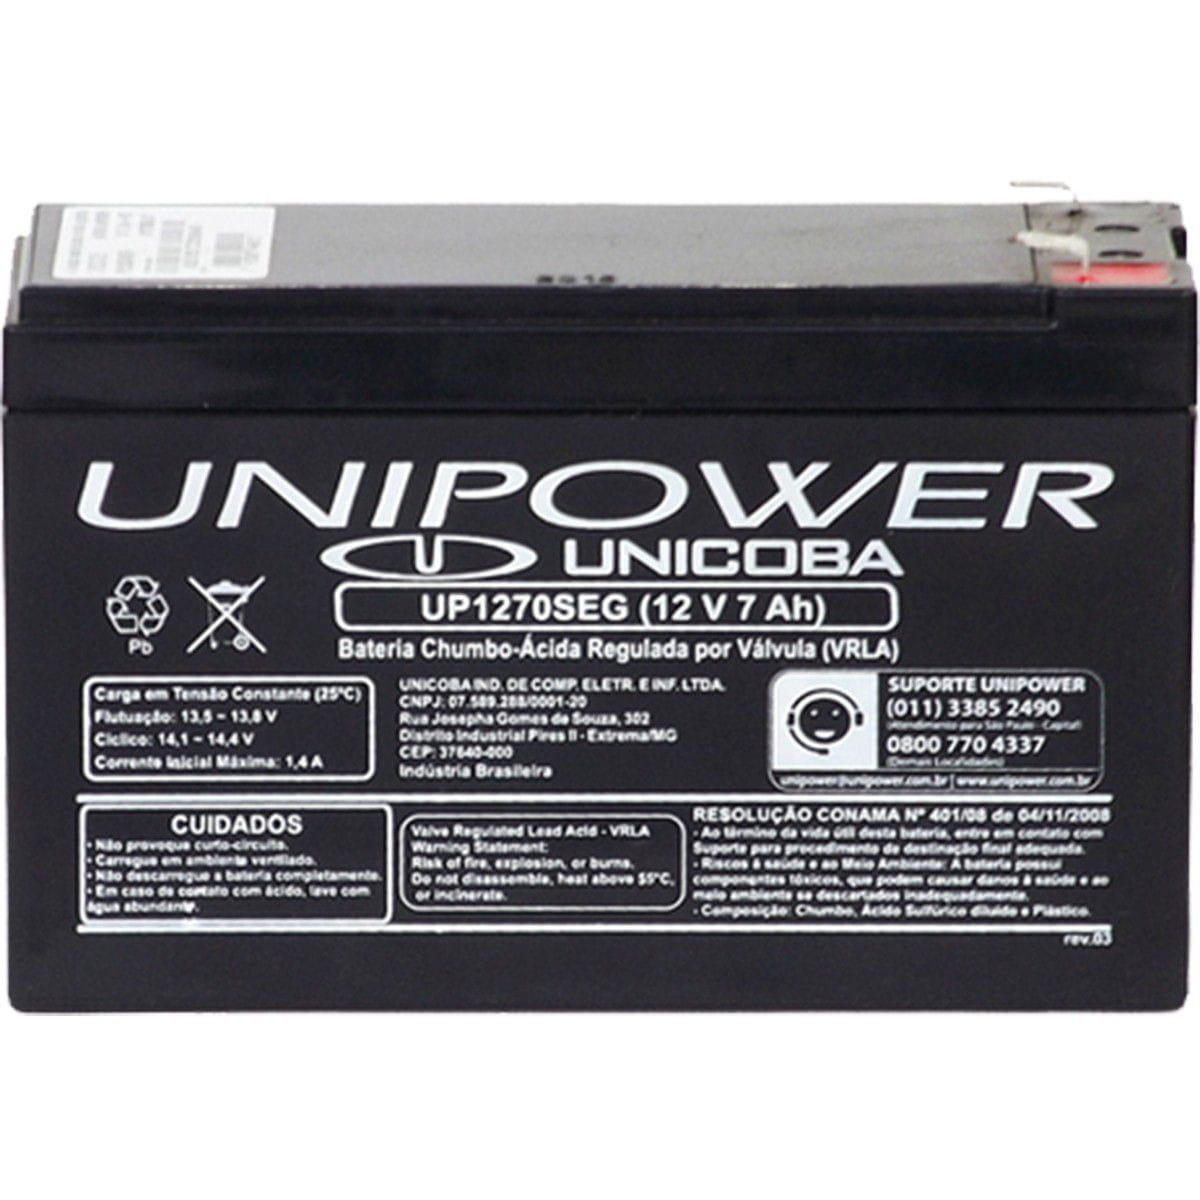 Bateria Selada Estacionária Unipower 12V UP1270SEG